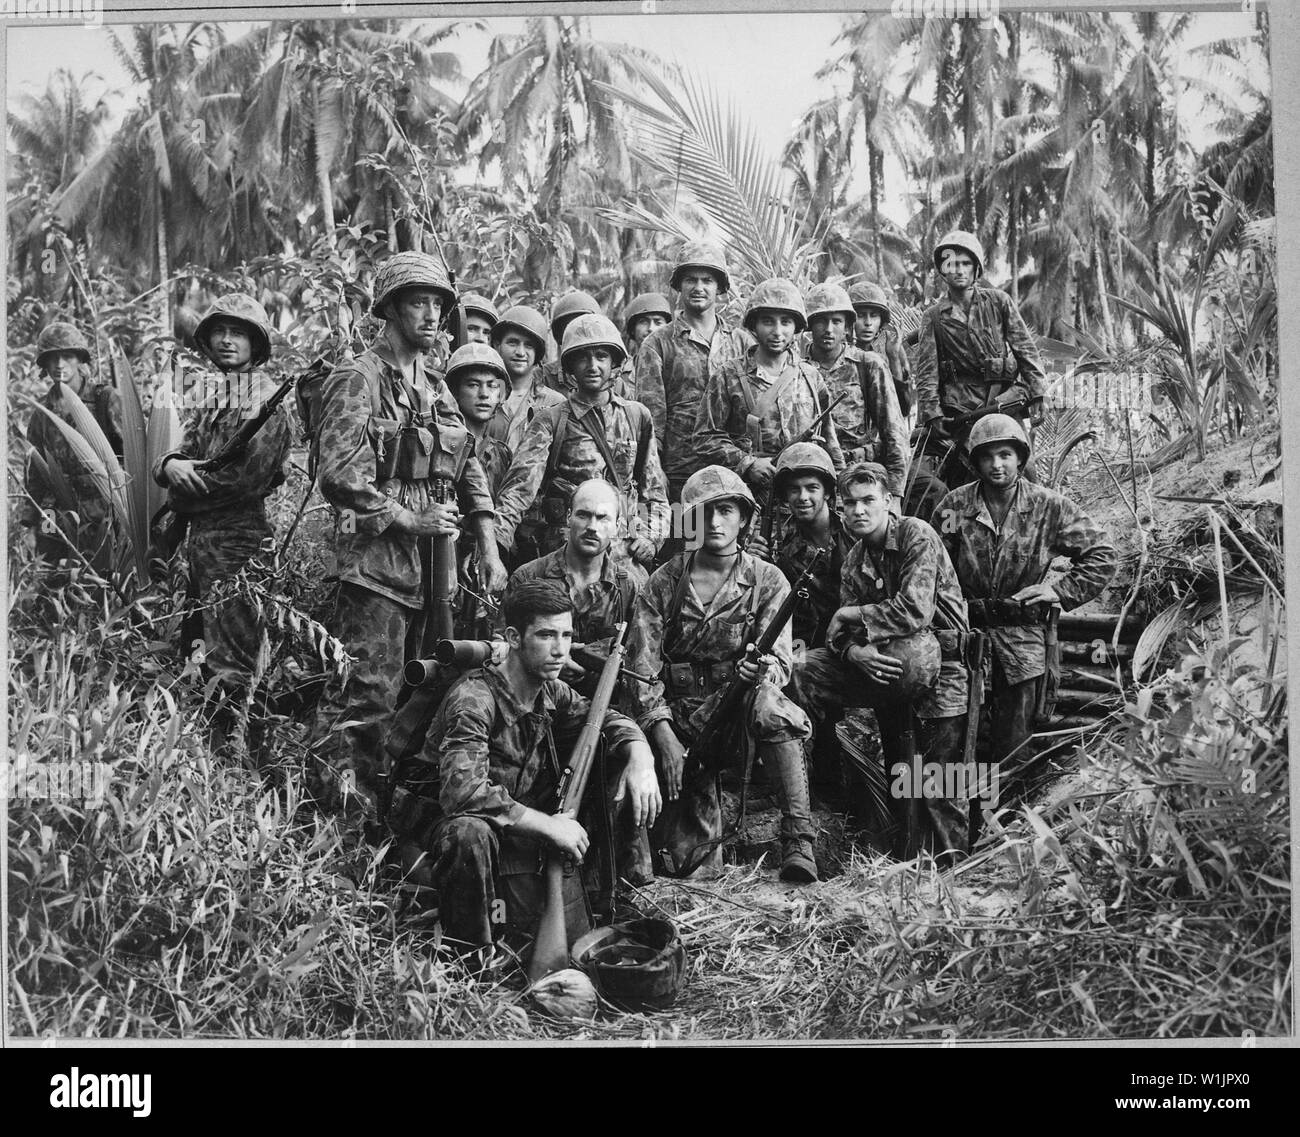 These men have earned the bloody reputation of being skillful jungle fighters. They are U.S. Marine Raiders gathered in front of a Japanese dugout on Cape Torokina on Bougainville, Solomon Islands, which thry helped to take.; General notes:  Use War and Conflict Number 1200 when ordering a reproduction or requesting information about this image. - Stock Image